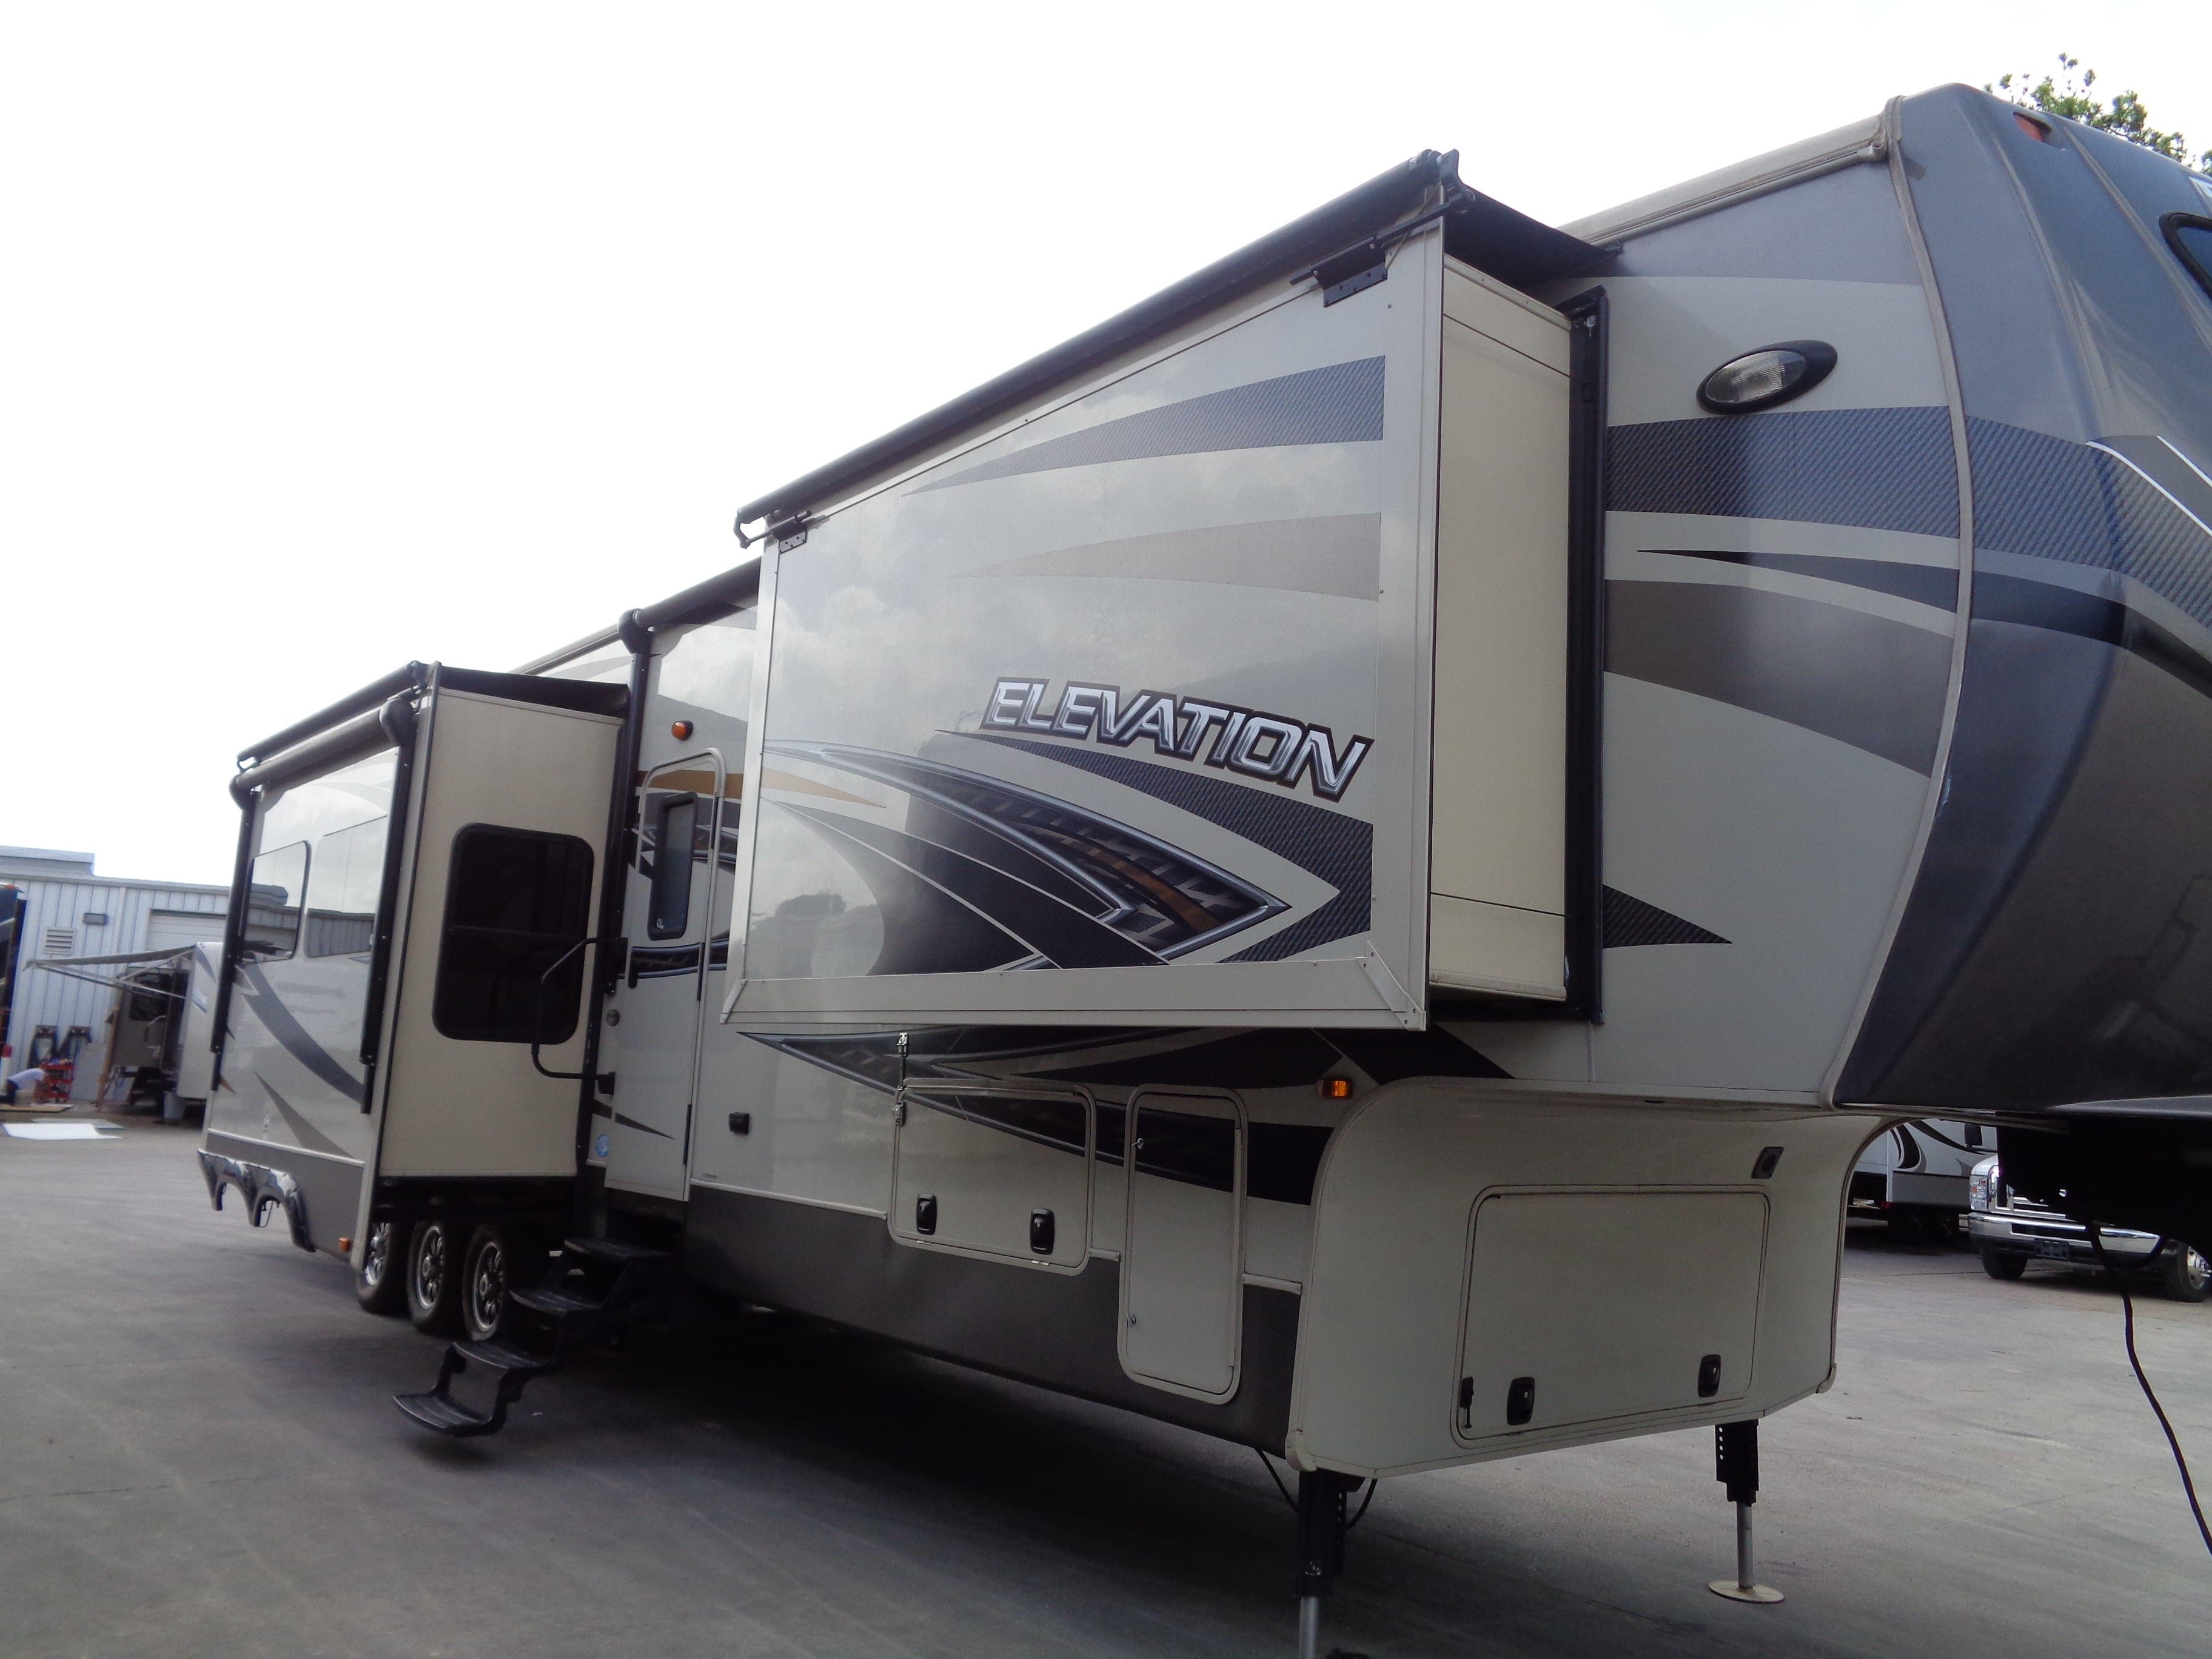 2015 crossroads elevation las vegas league city tx 30207 for sale holiday world rv dealerships in texas new mexico 2015 crossroads elevation las vegas league city tx 30207 for sale holiday world rv dealerships in texas new mexico